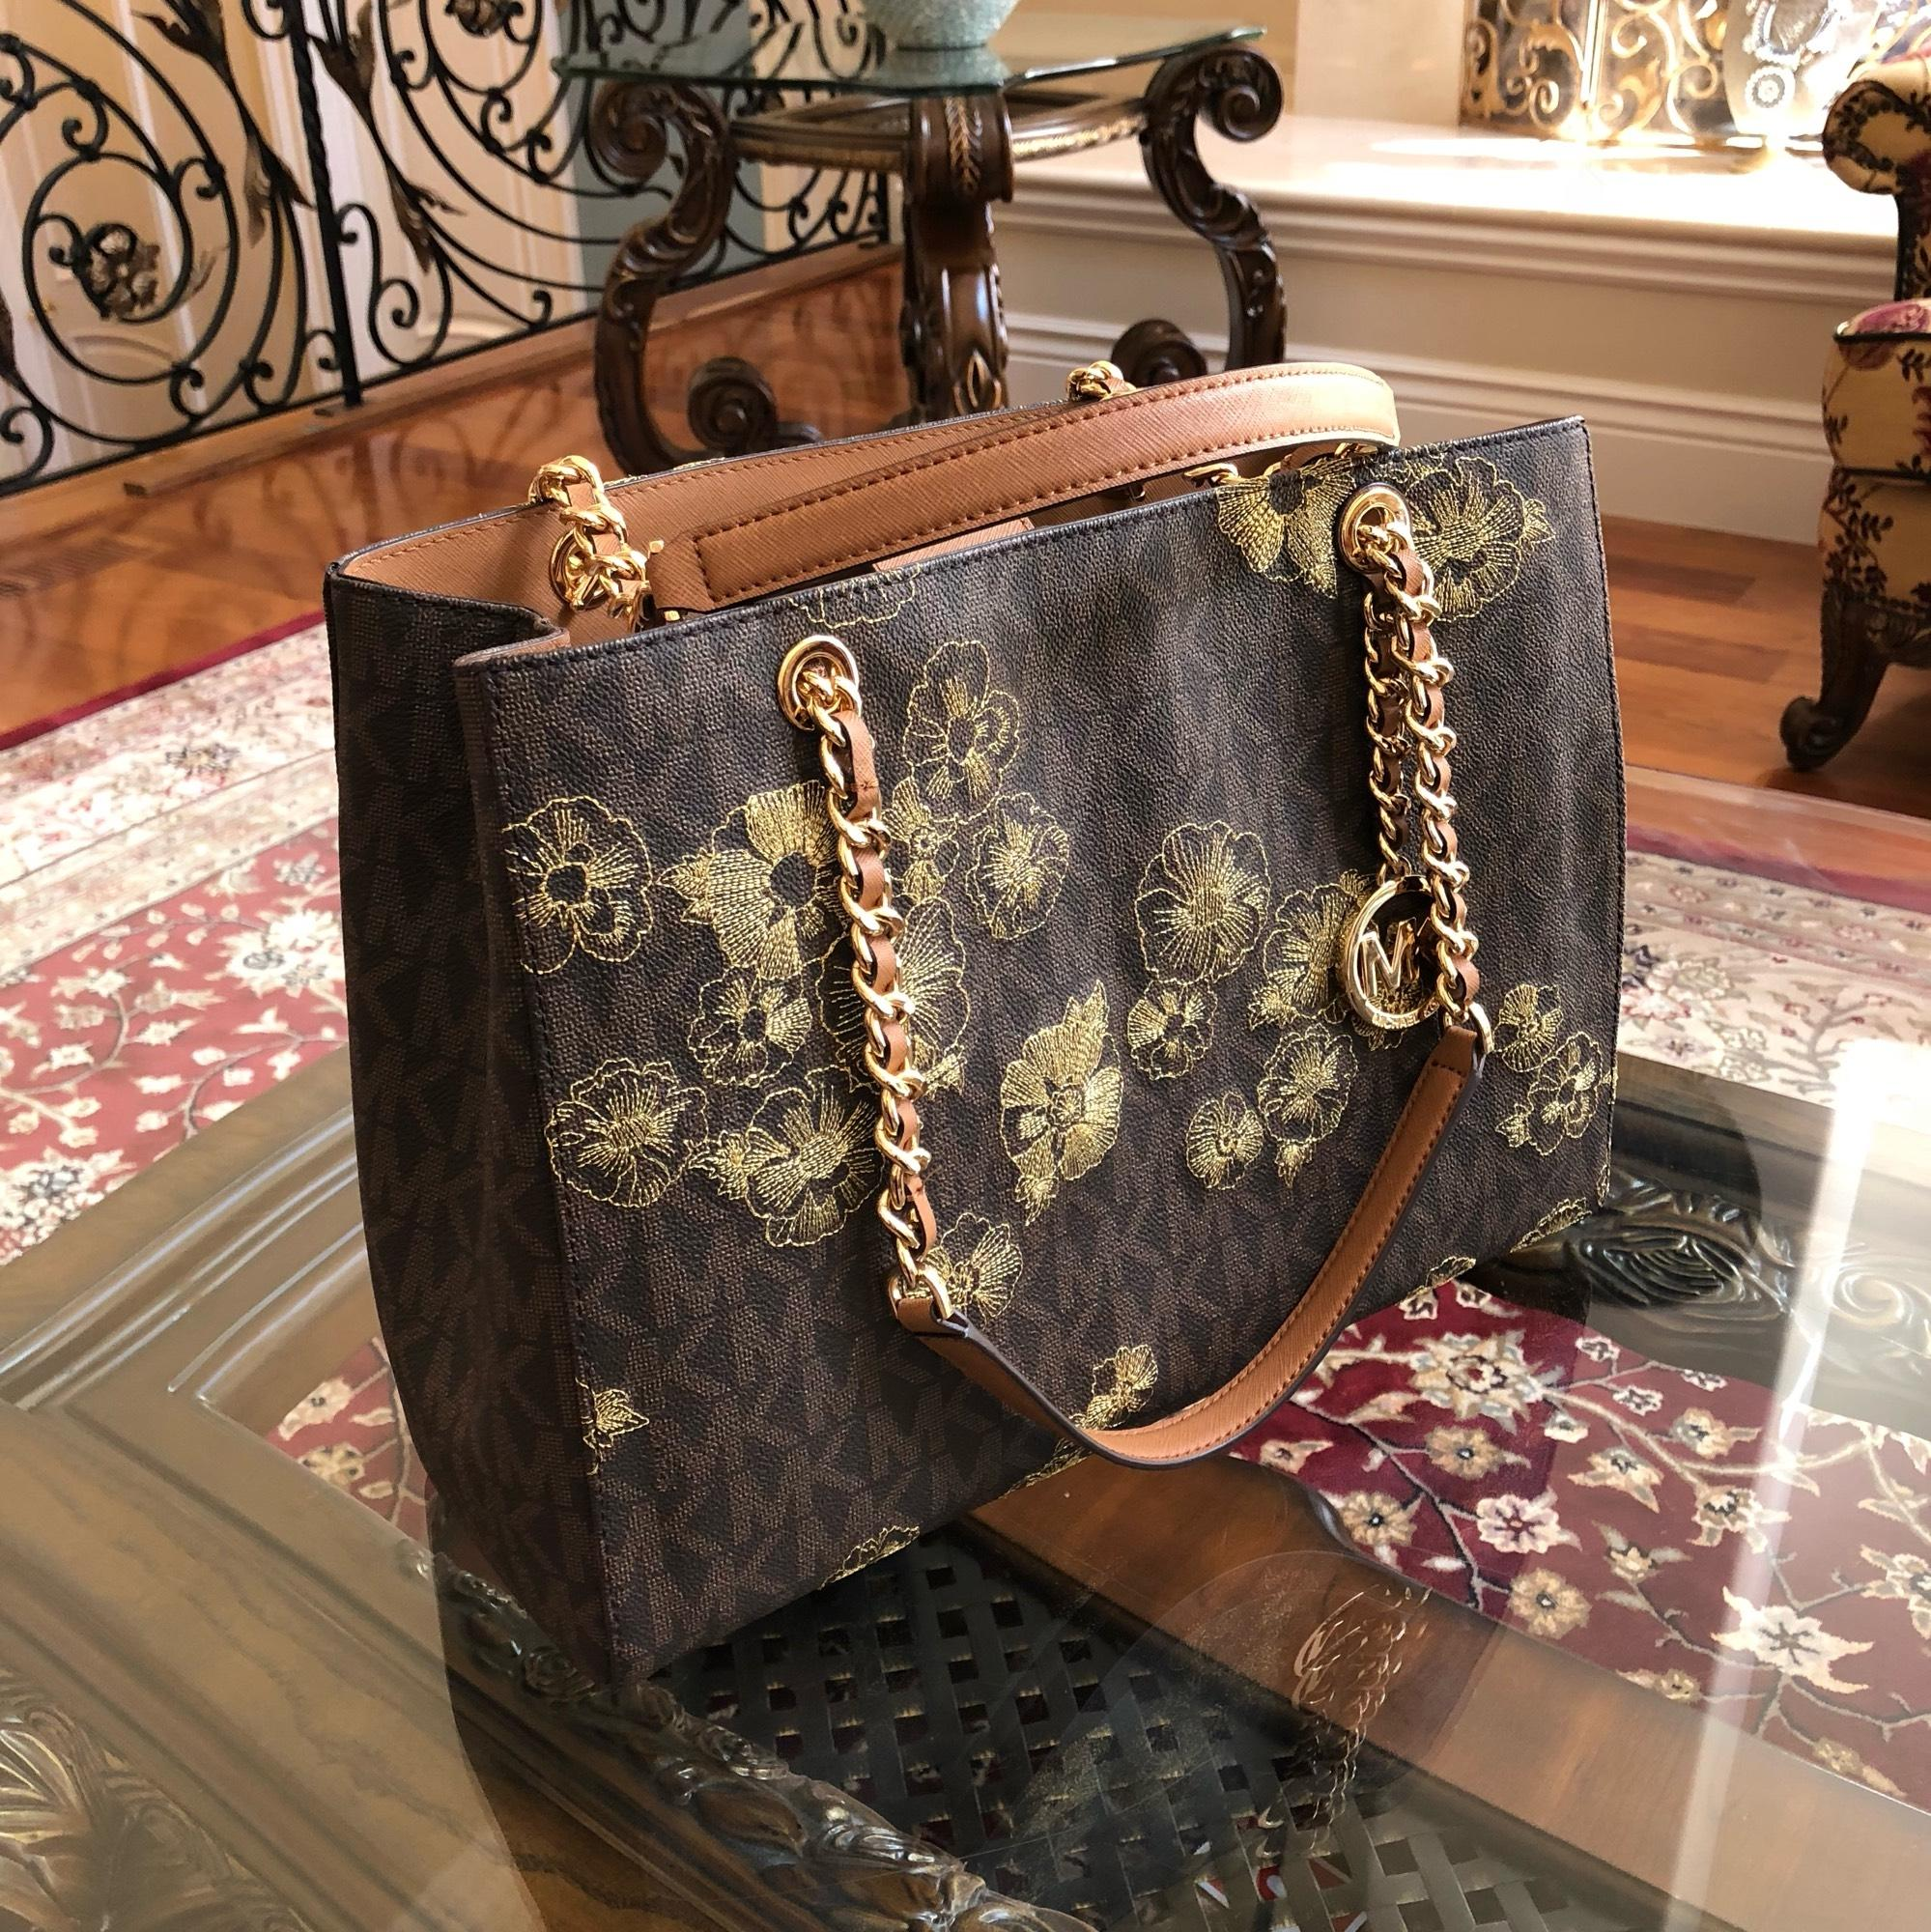 5d863570d2c5 ... shopping michael kors signature monogram chain satchel floral  embroidery tote in brown. 123456789101112 05bf8 eeeba ...